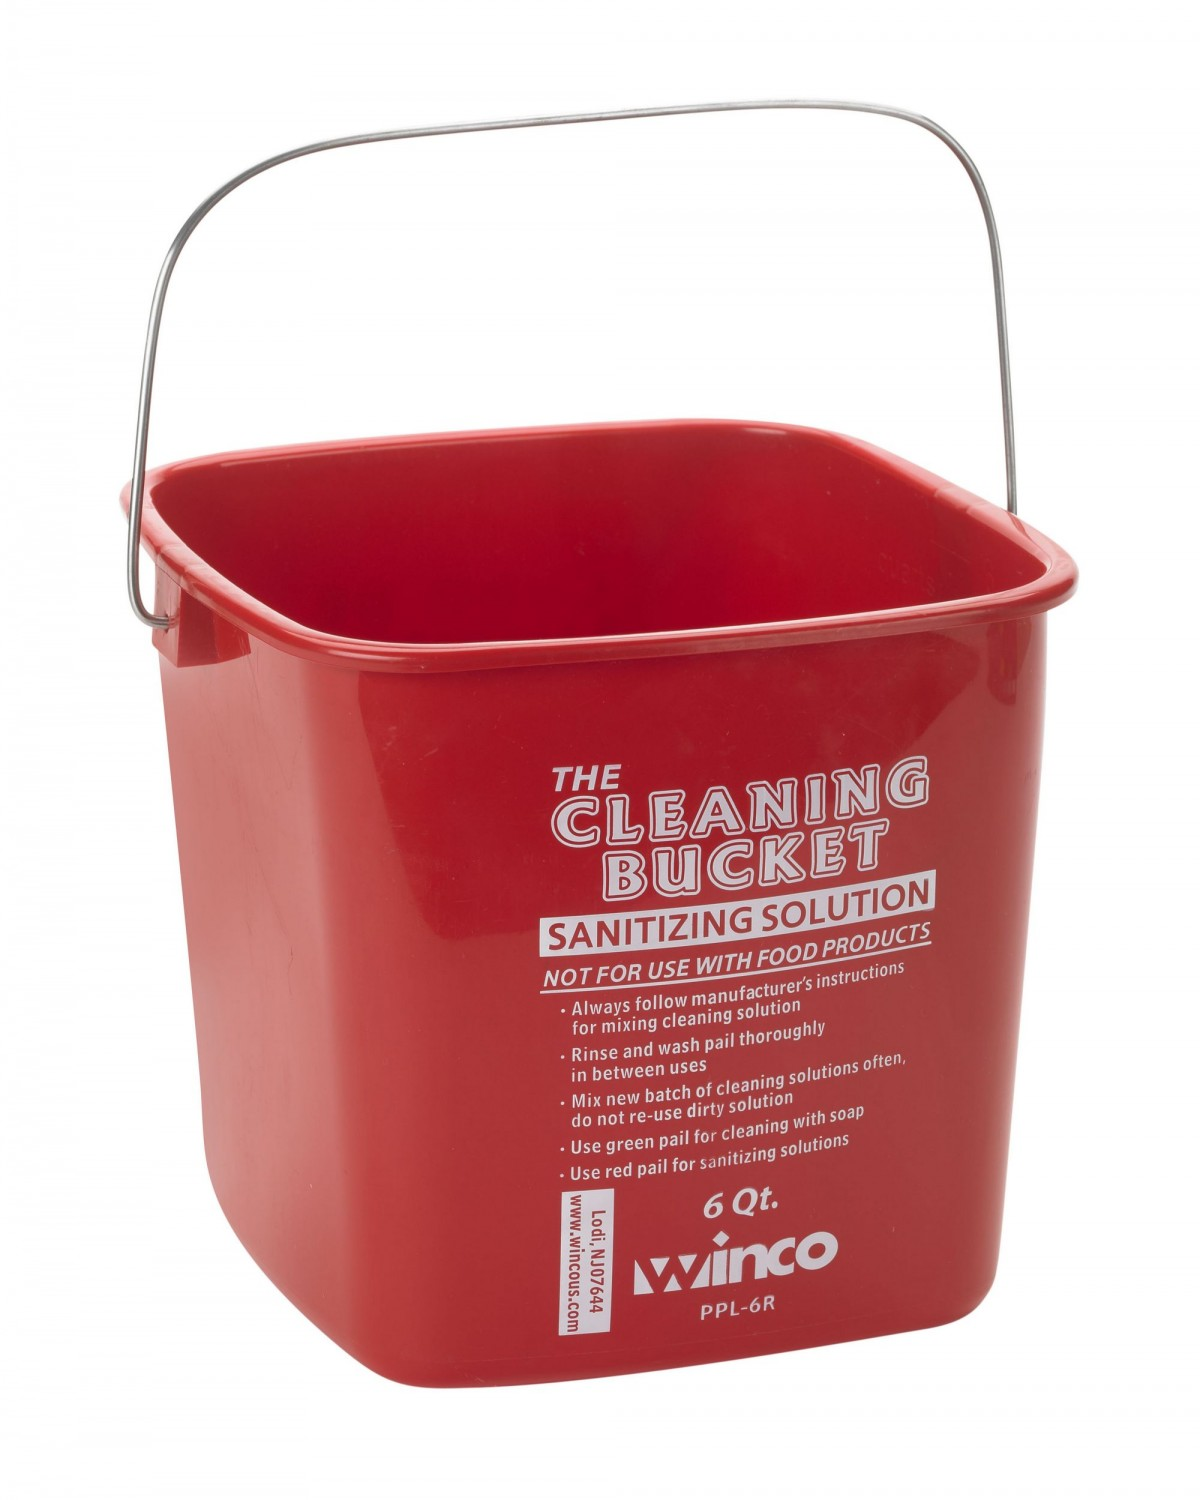 Winco PPL-6R Red Cleaning Bucket 6 Qt.